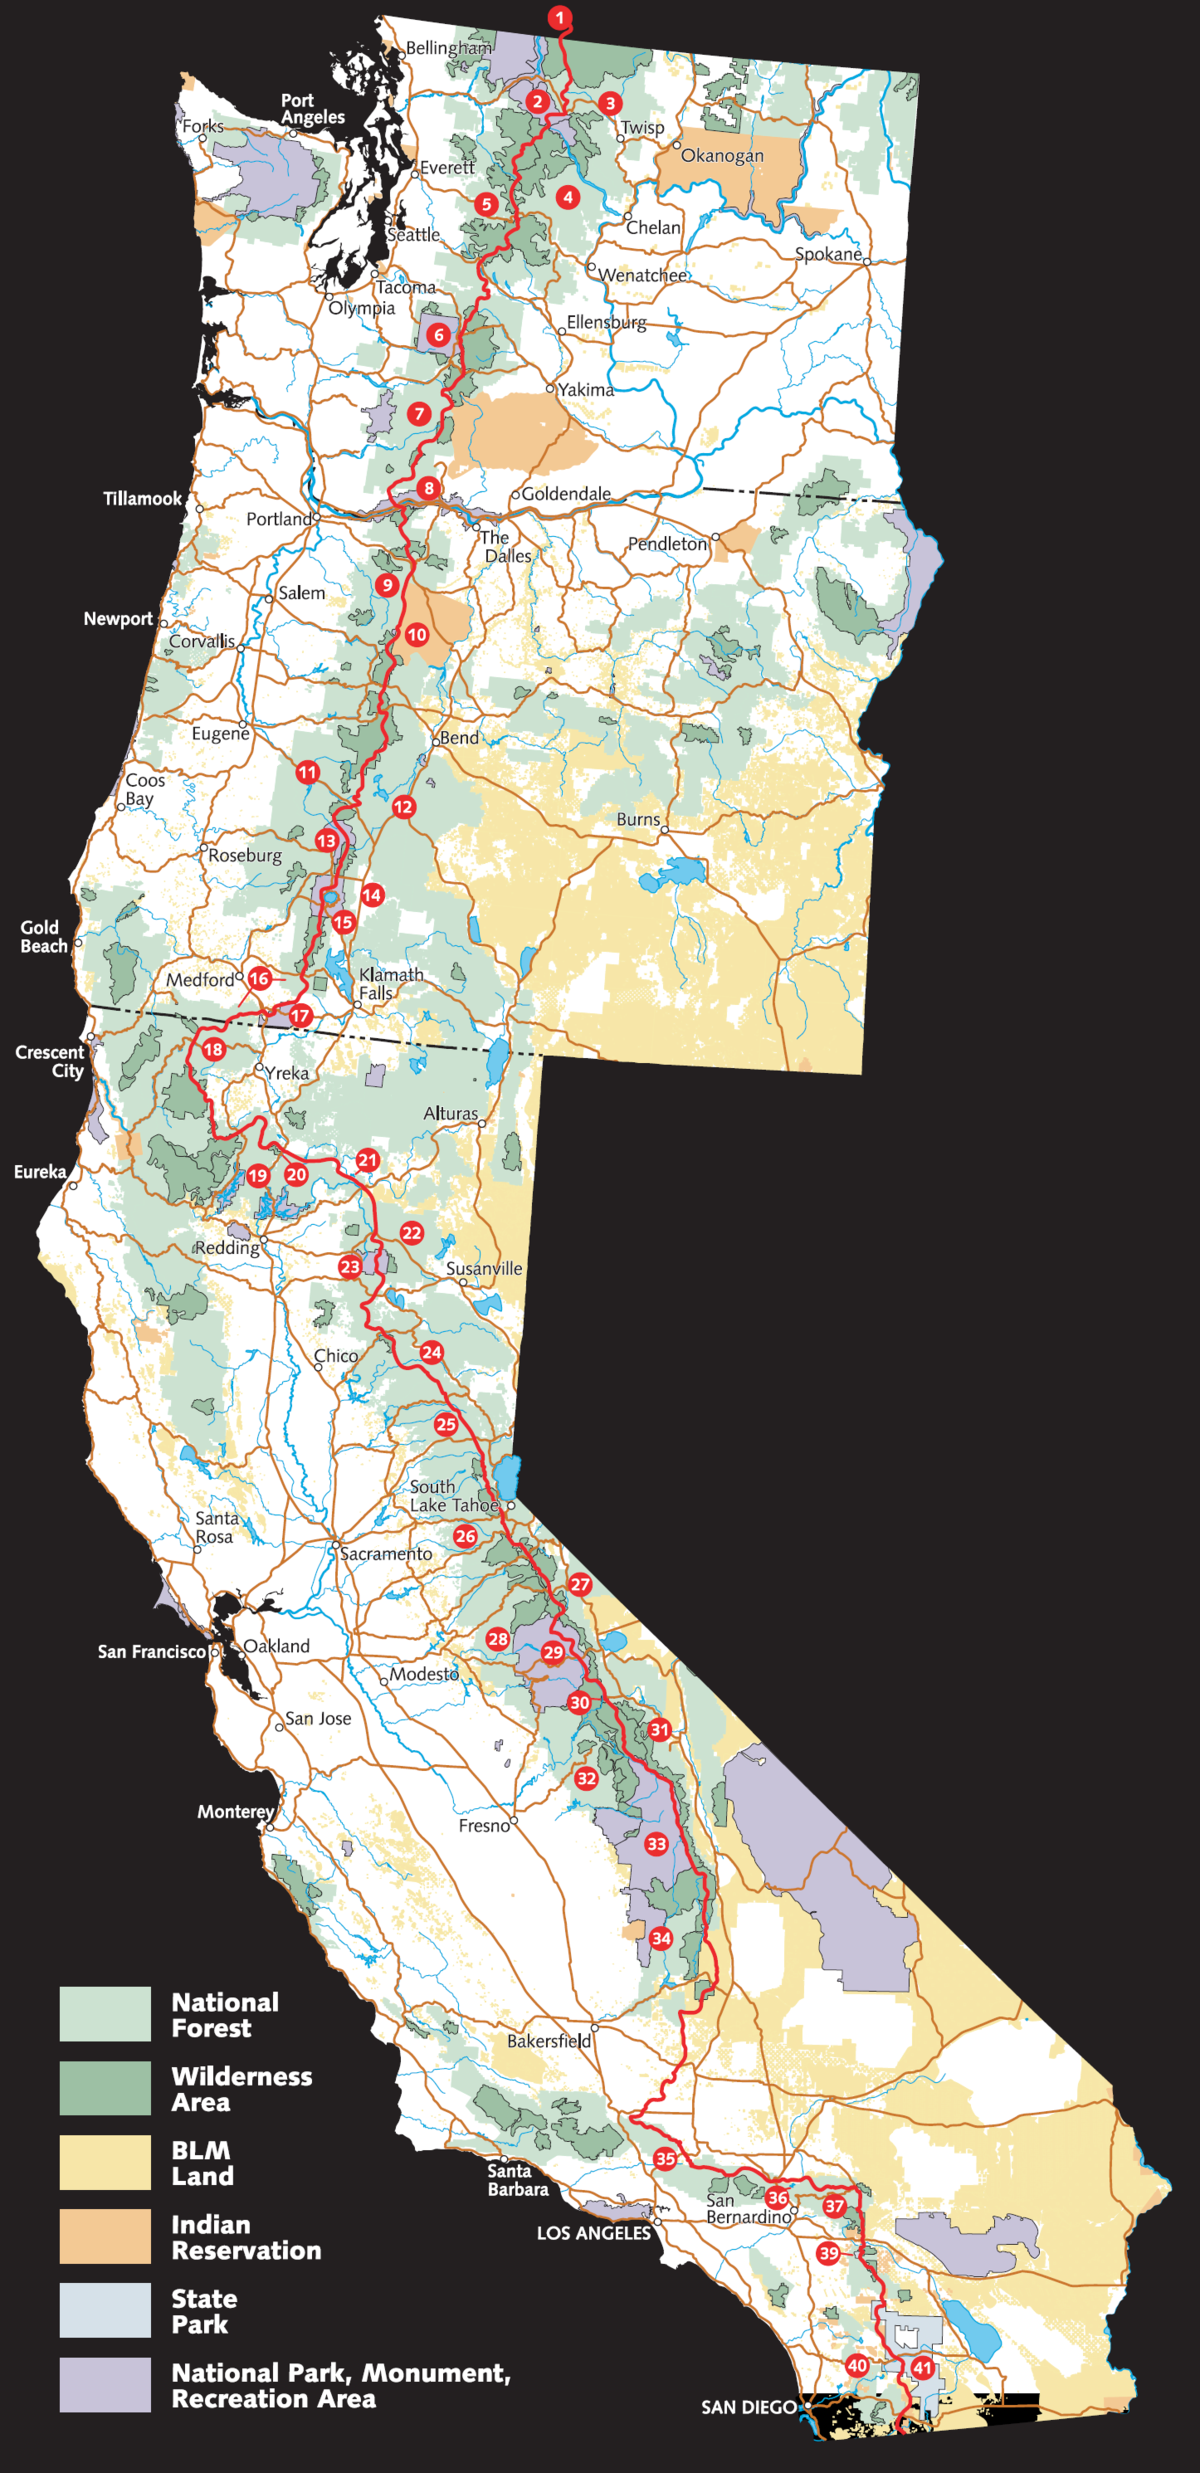 Pacific crest trail route overview.png